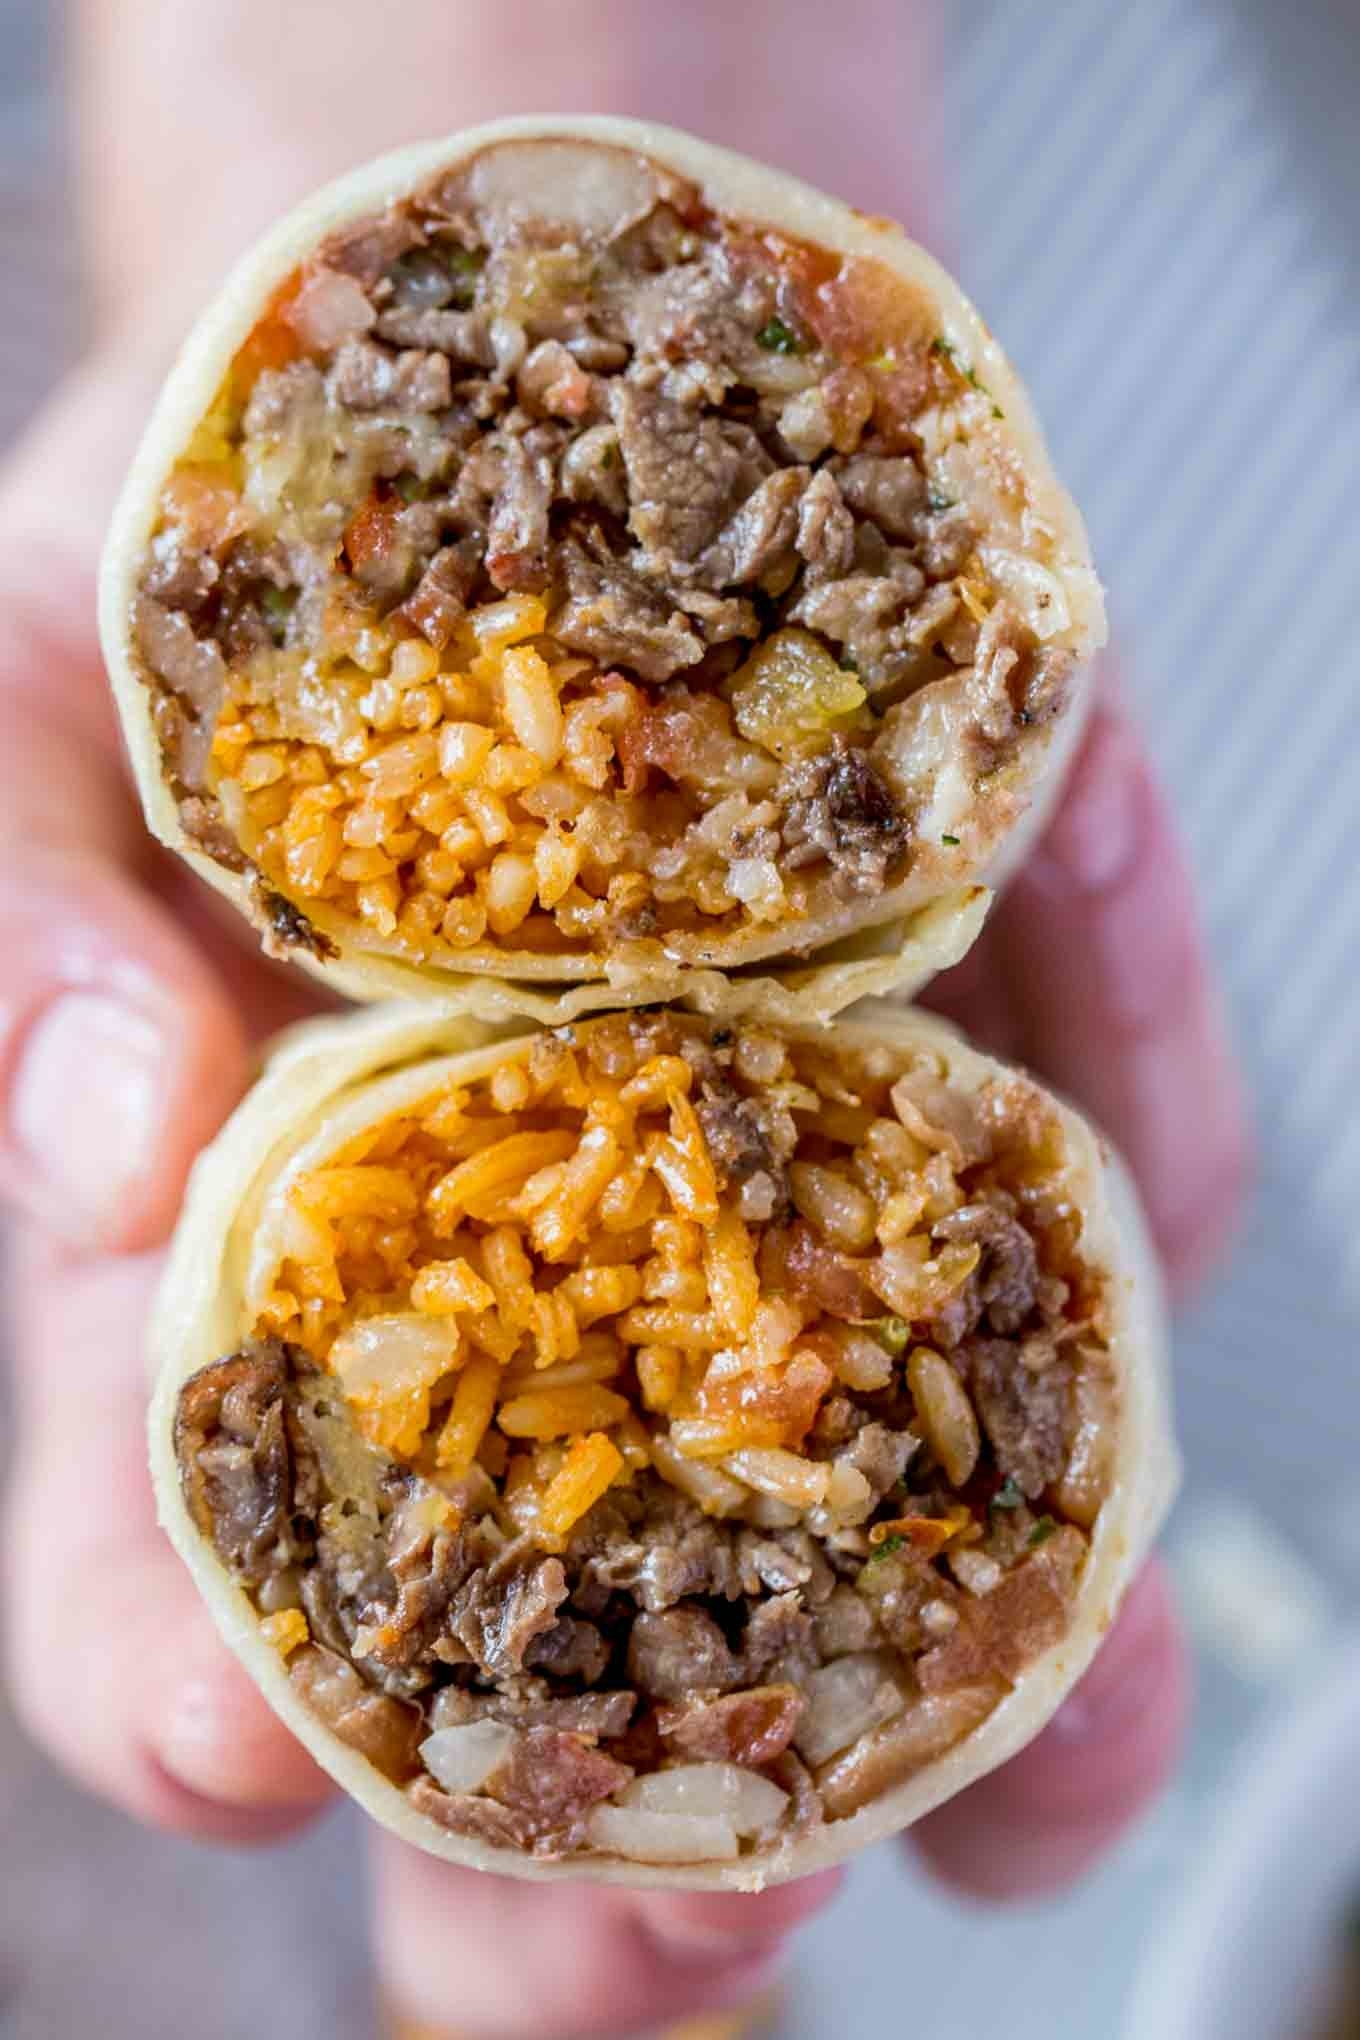 A beef burrito with rice and beans cut into halves.